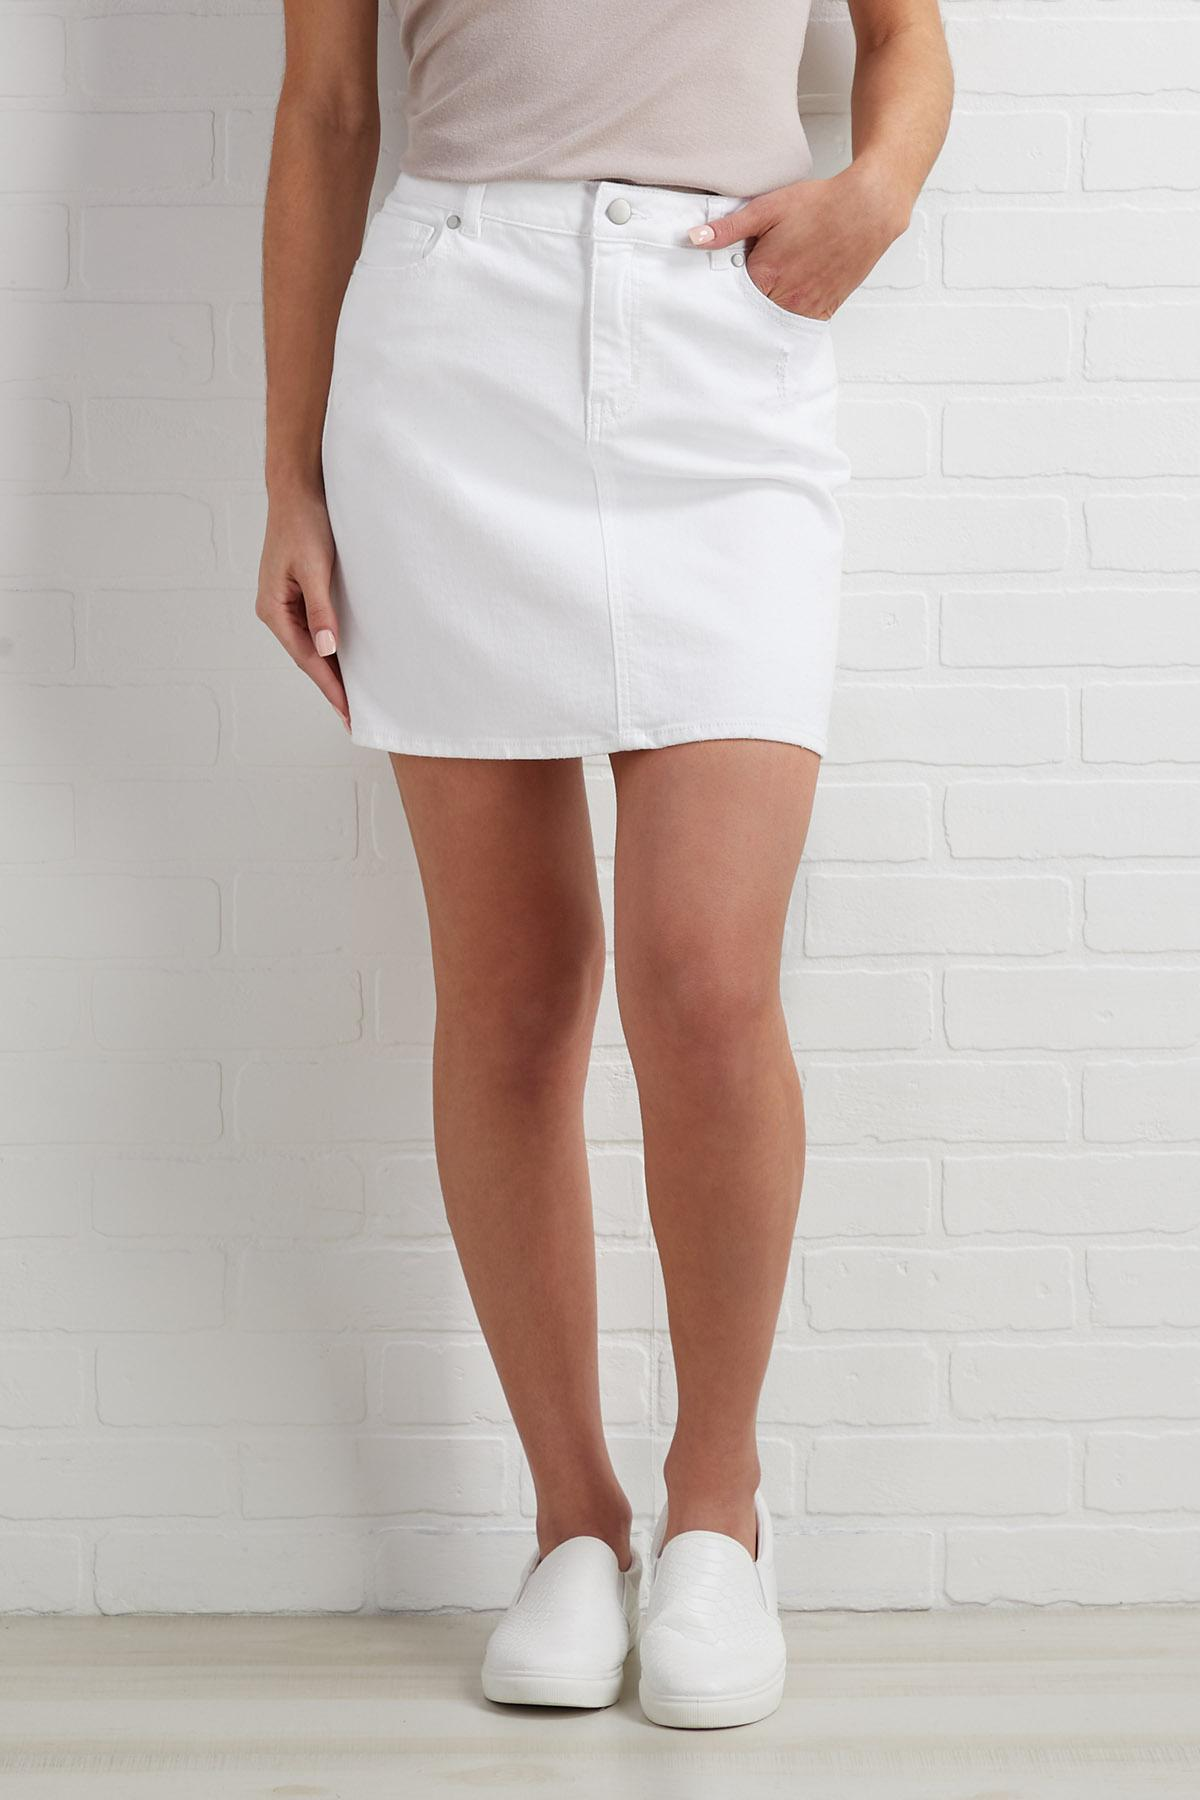 Out To Brunch Skirt